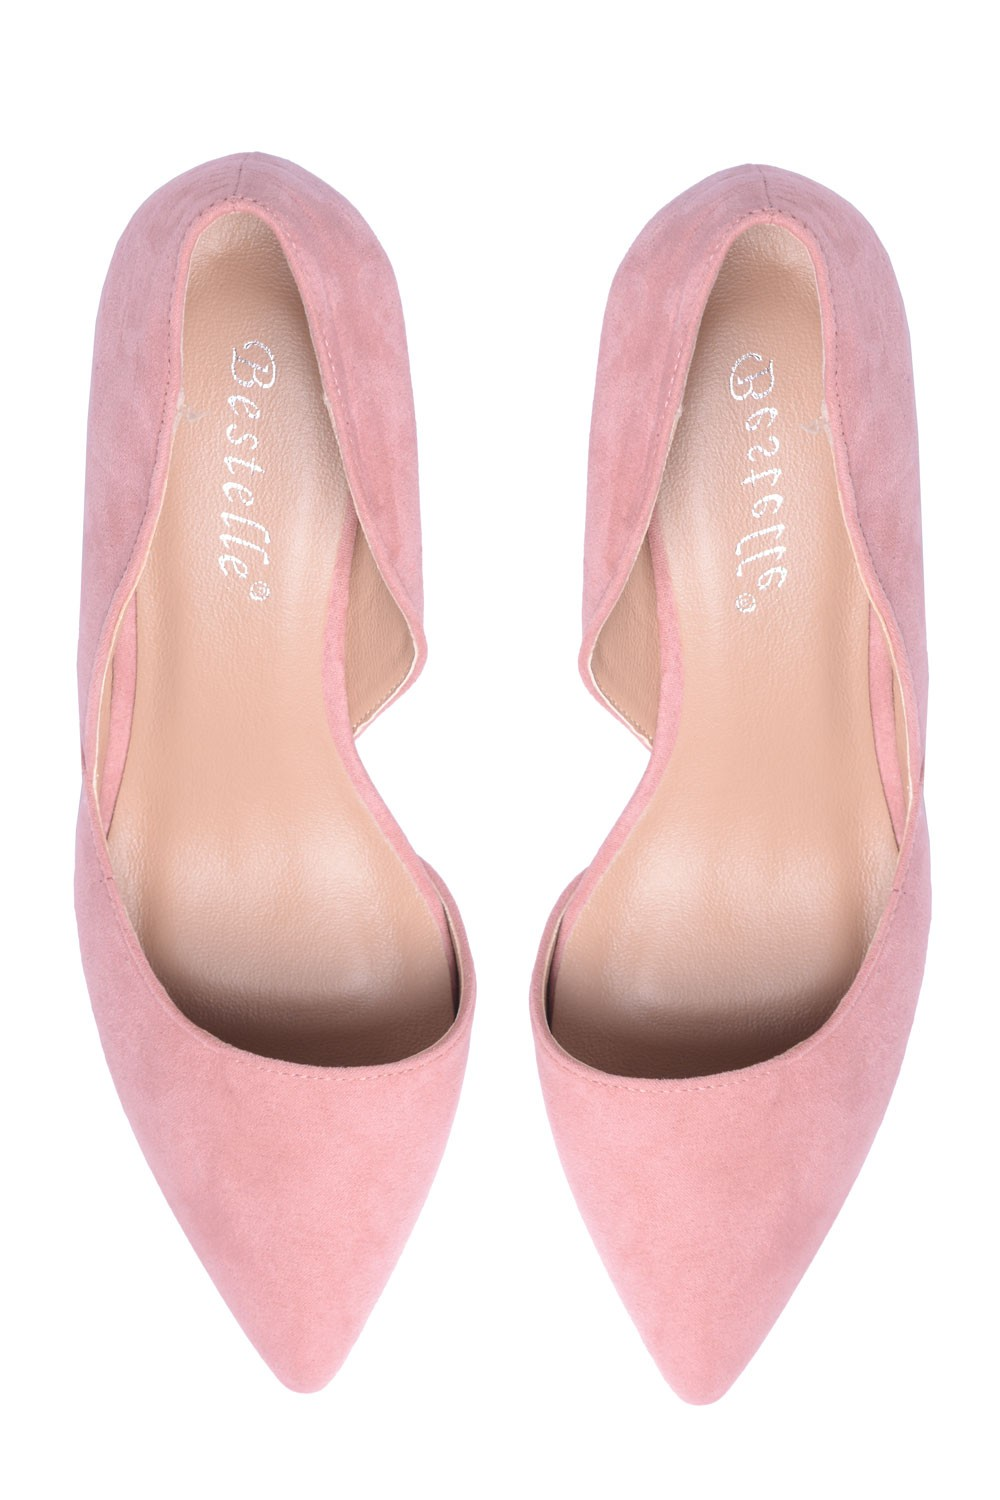 Sole City Onagh Kitten Heel in Pink | iCLOTHING